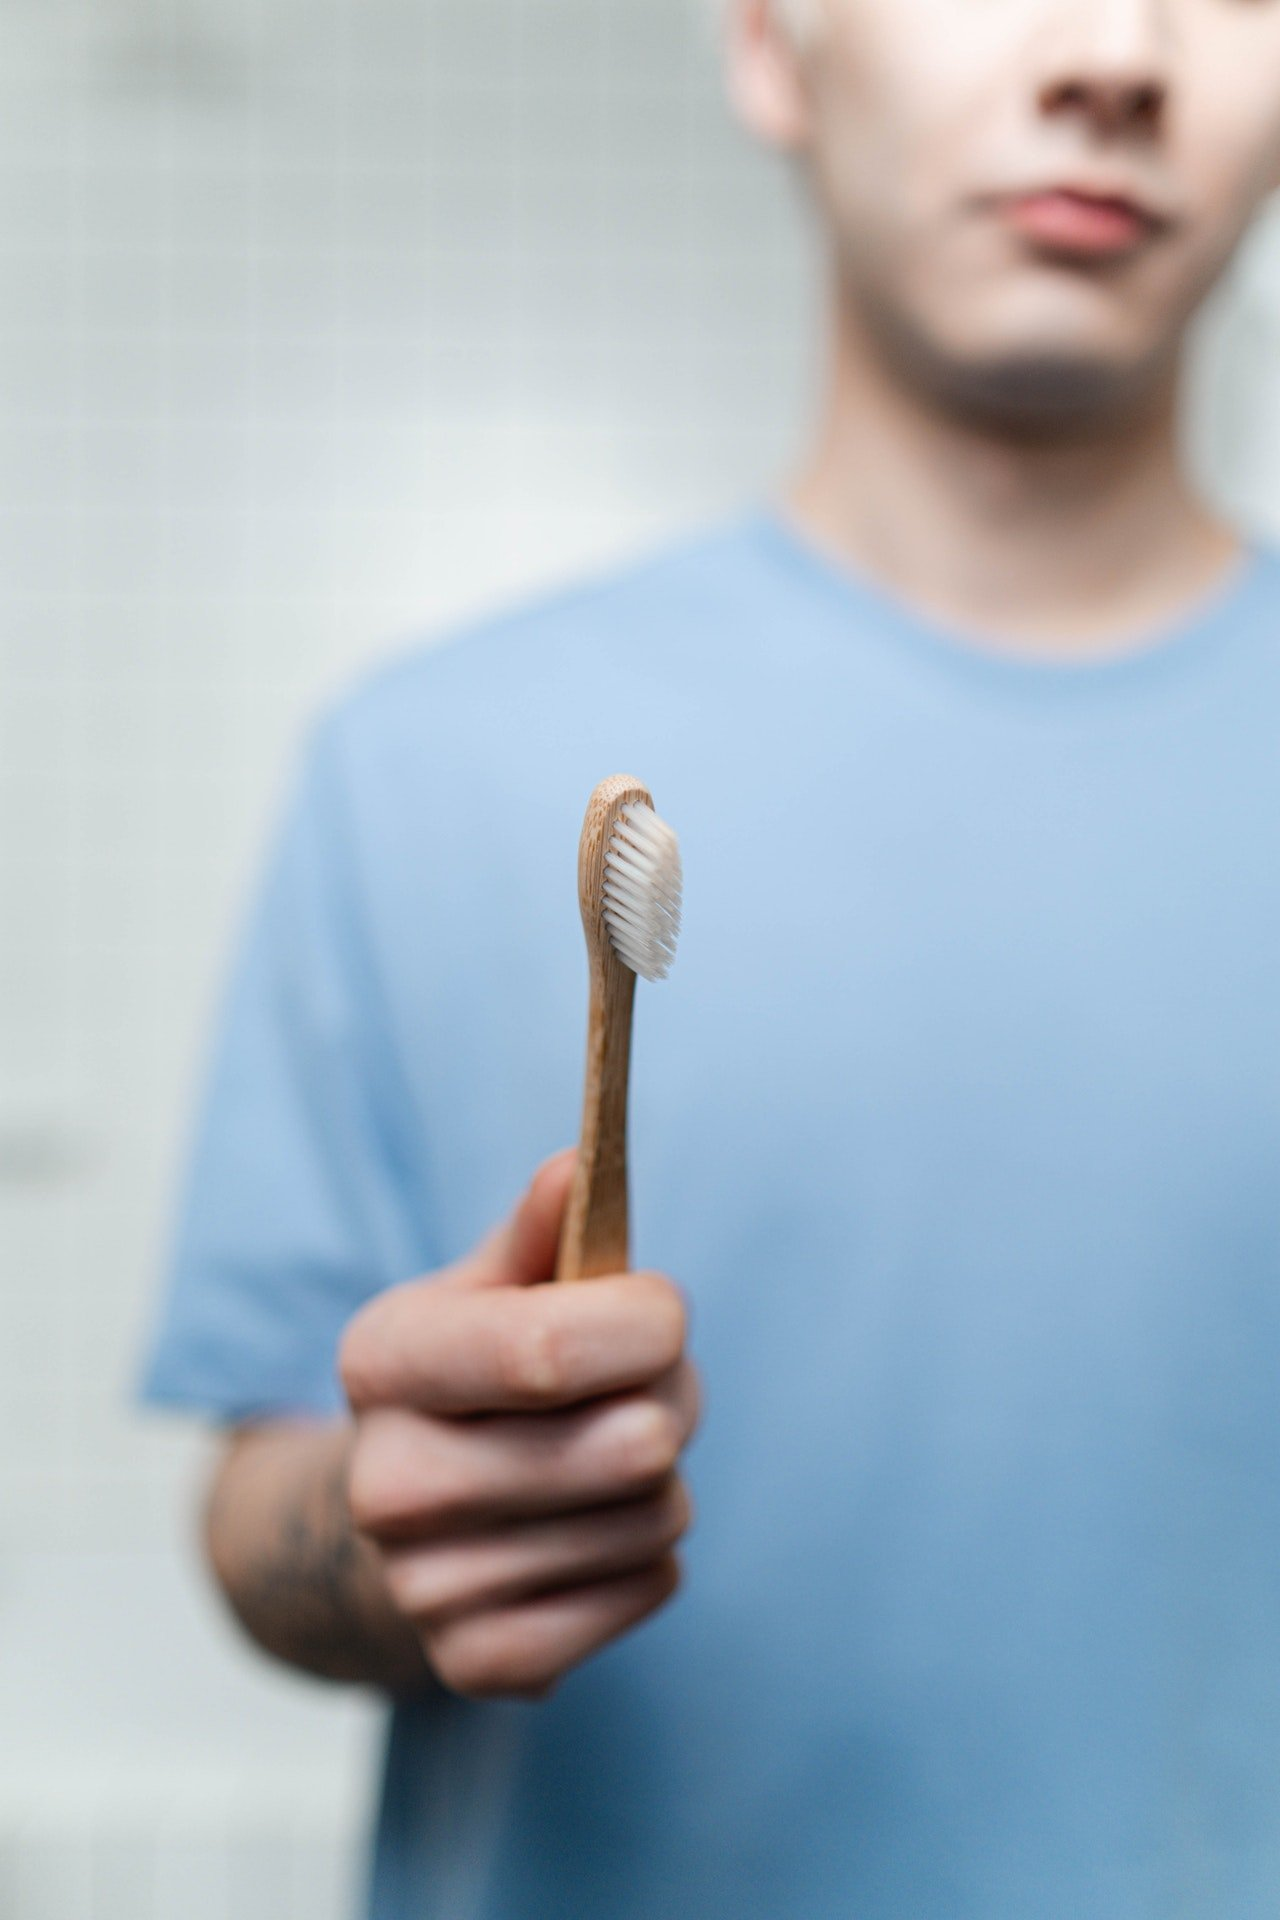 Photo of a man holding a toothbrush | Photo: Pexels